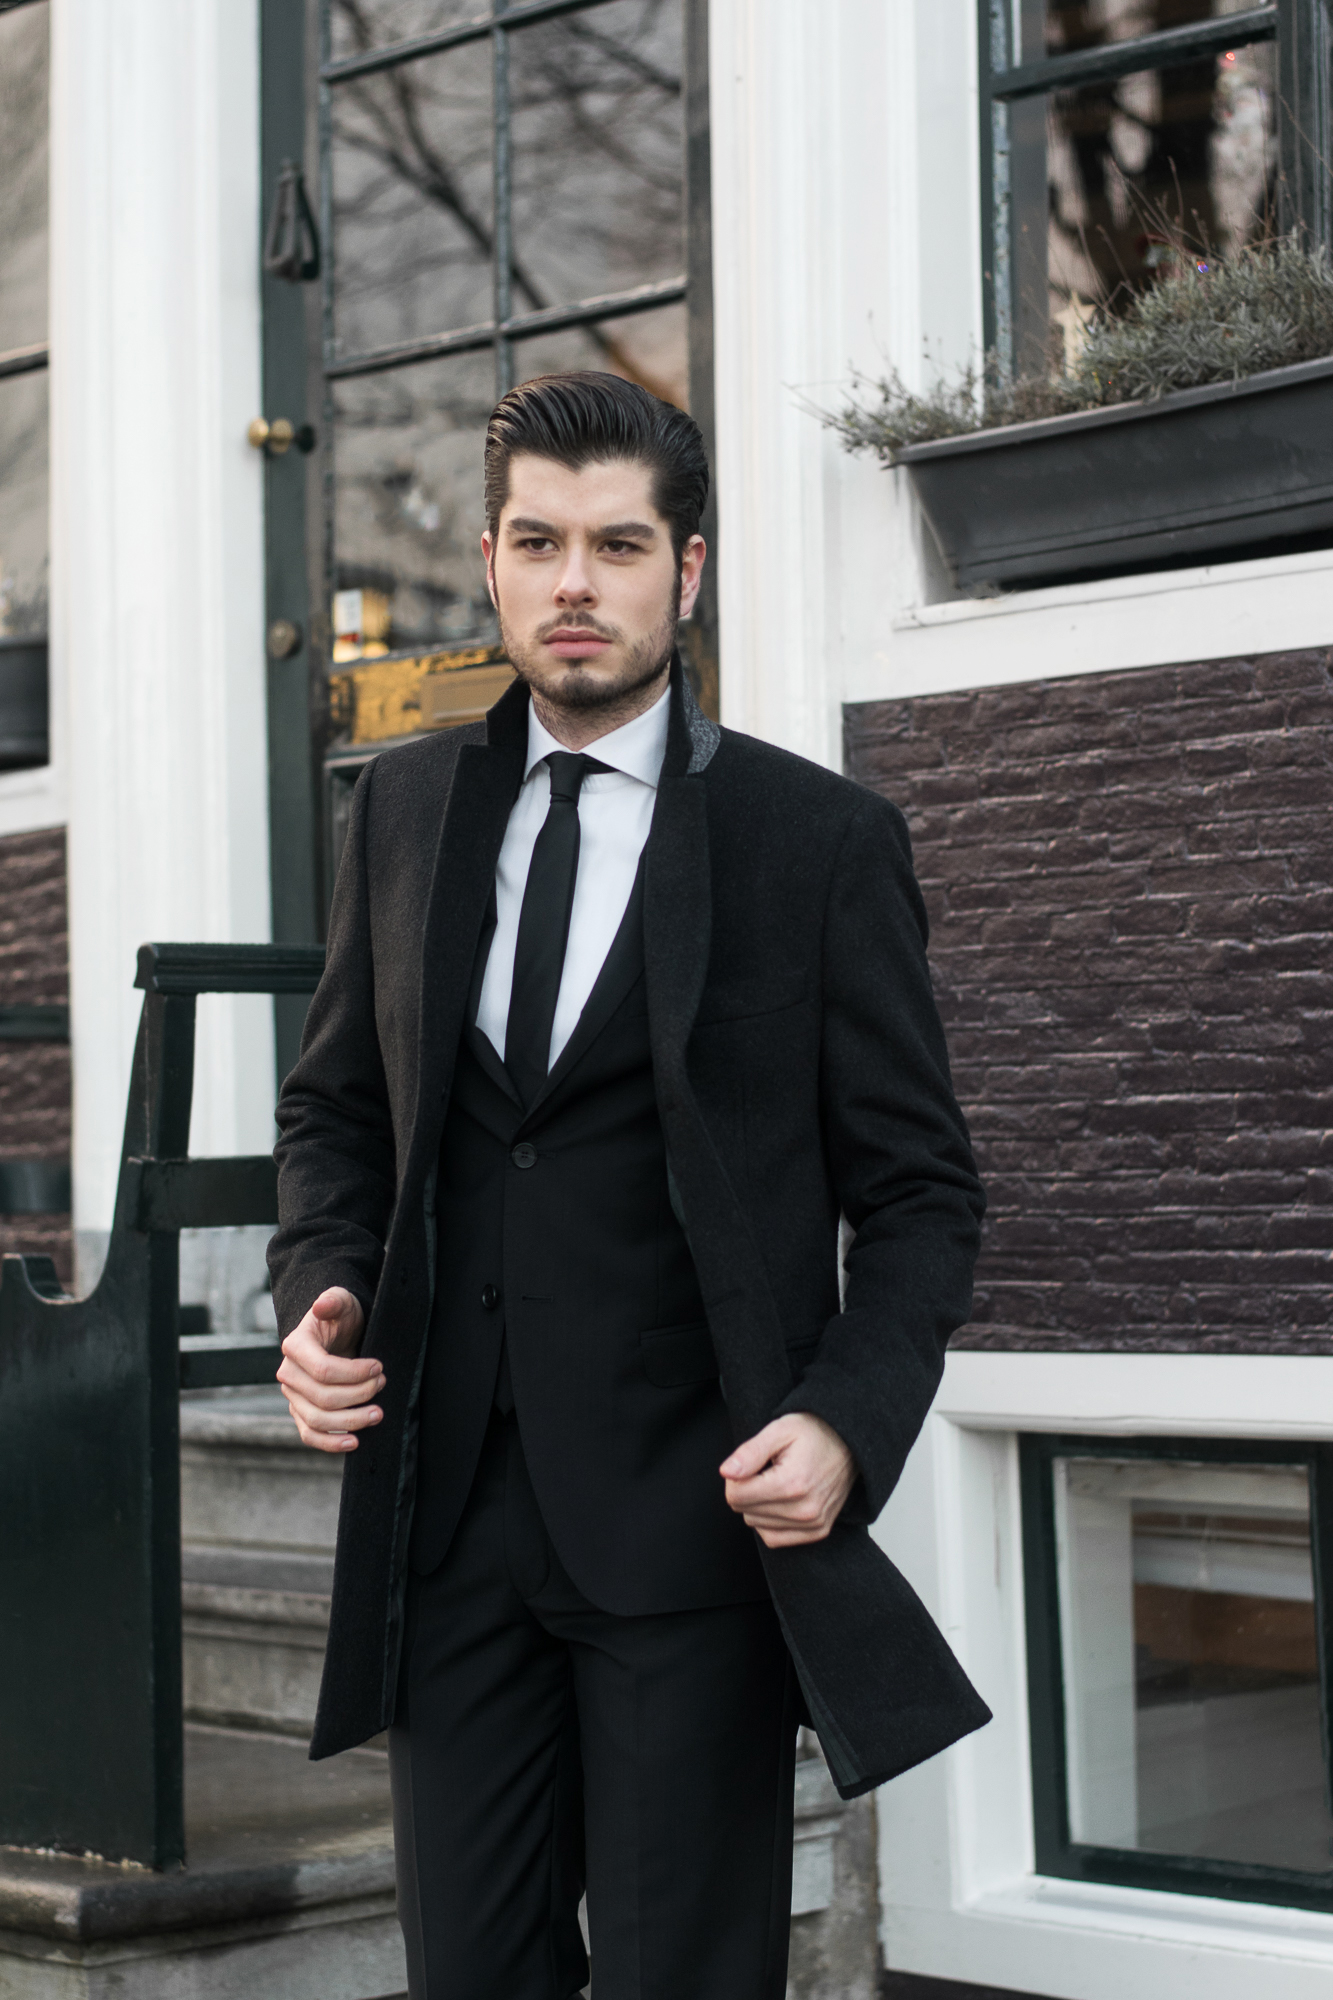 S Oliver Black Tie Christmas Party Menswear By Mw By Mw